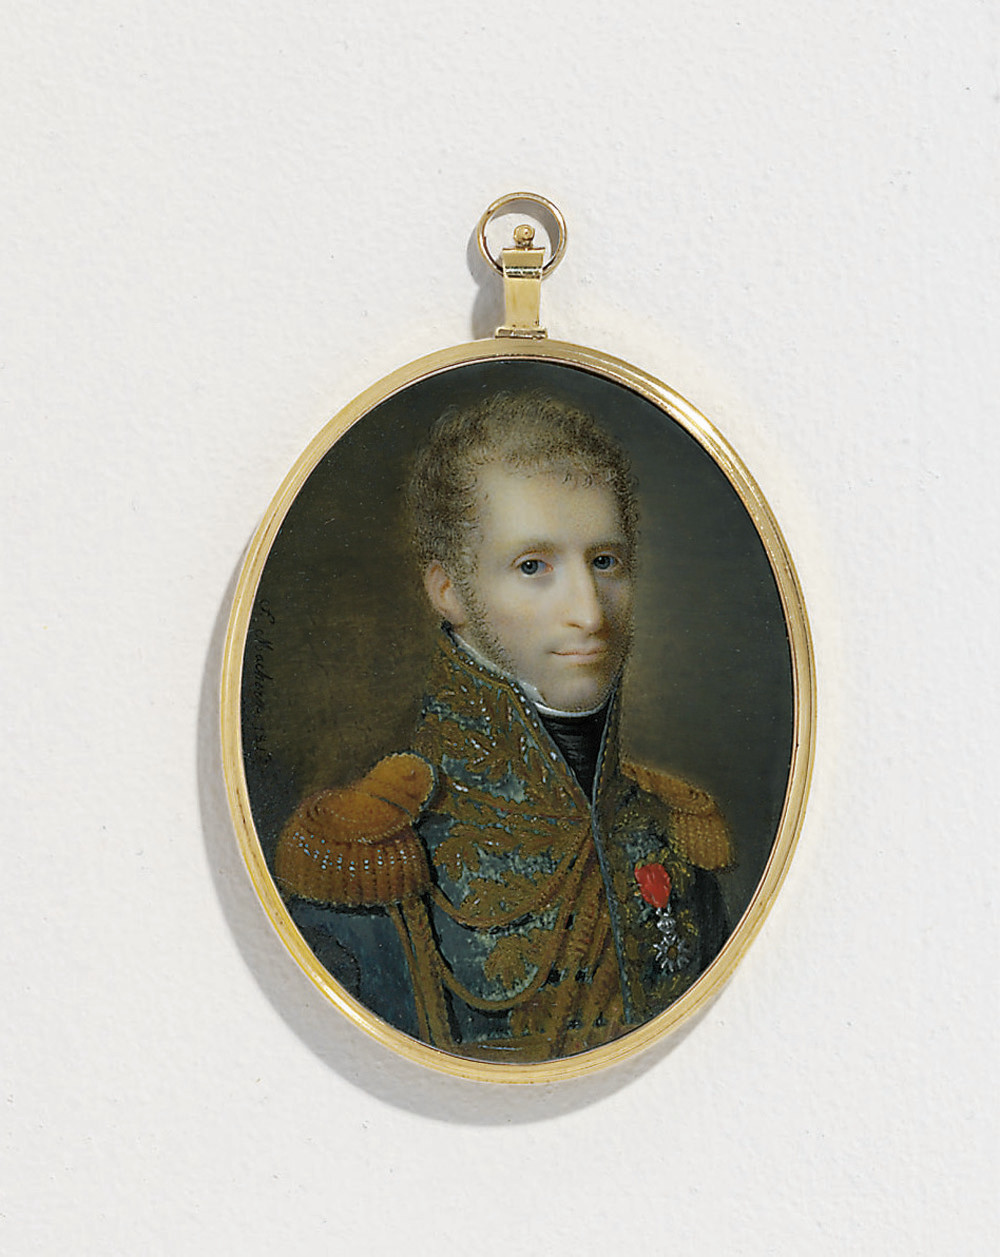 A young General or Marshal, in blue uniform with gold laurel embroidery and buttons, gold epaulettes and aiguillettes, black stock, white linen shirt with stand-collar, wearing the badge of the Imperial French Order of the Legion of Honour